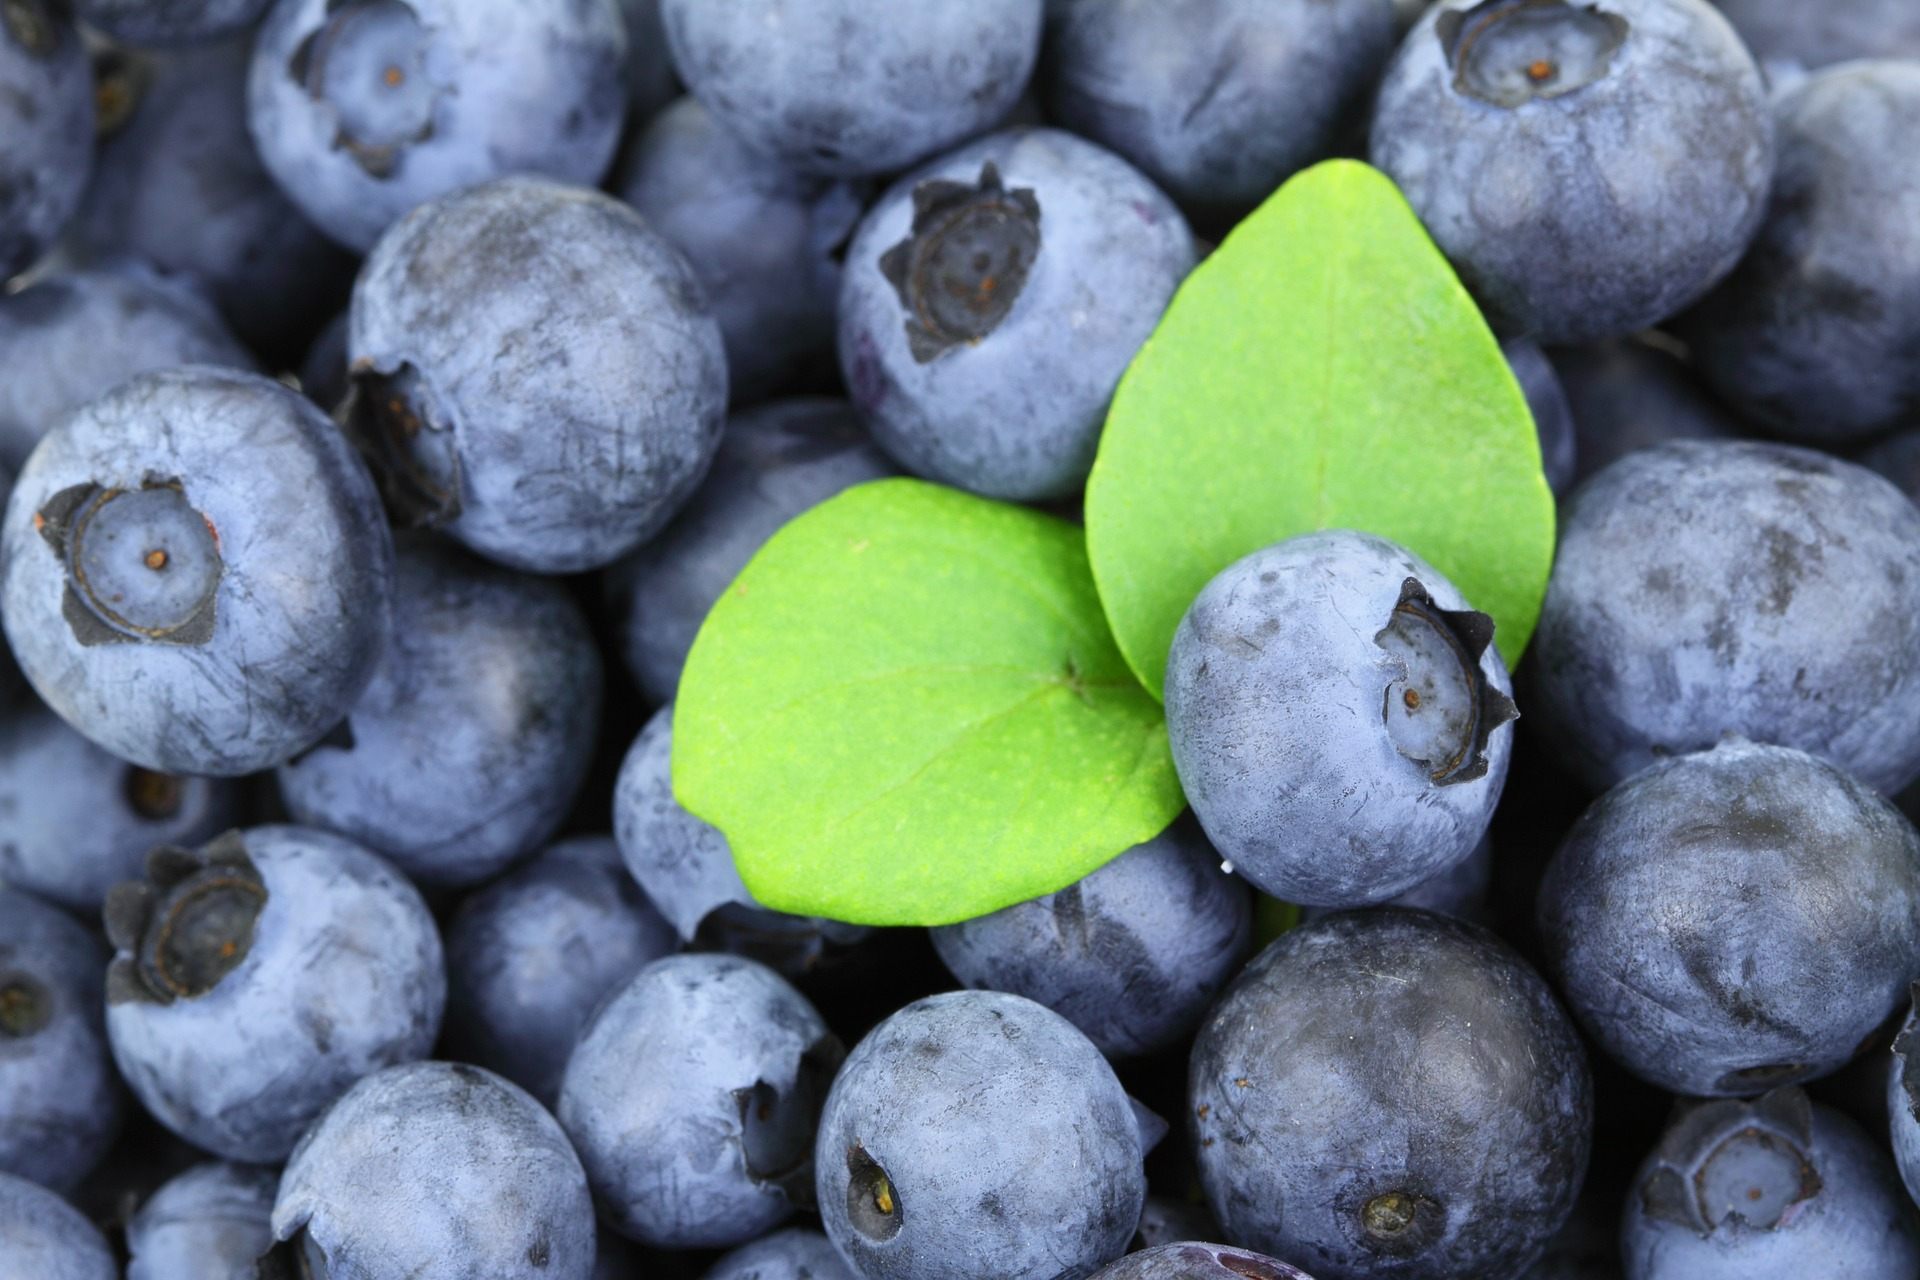 blueberry suppliers on the market